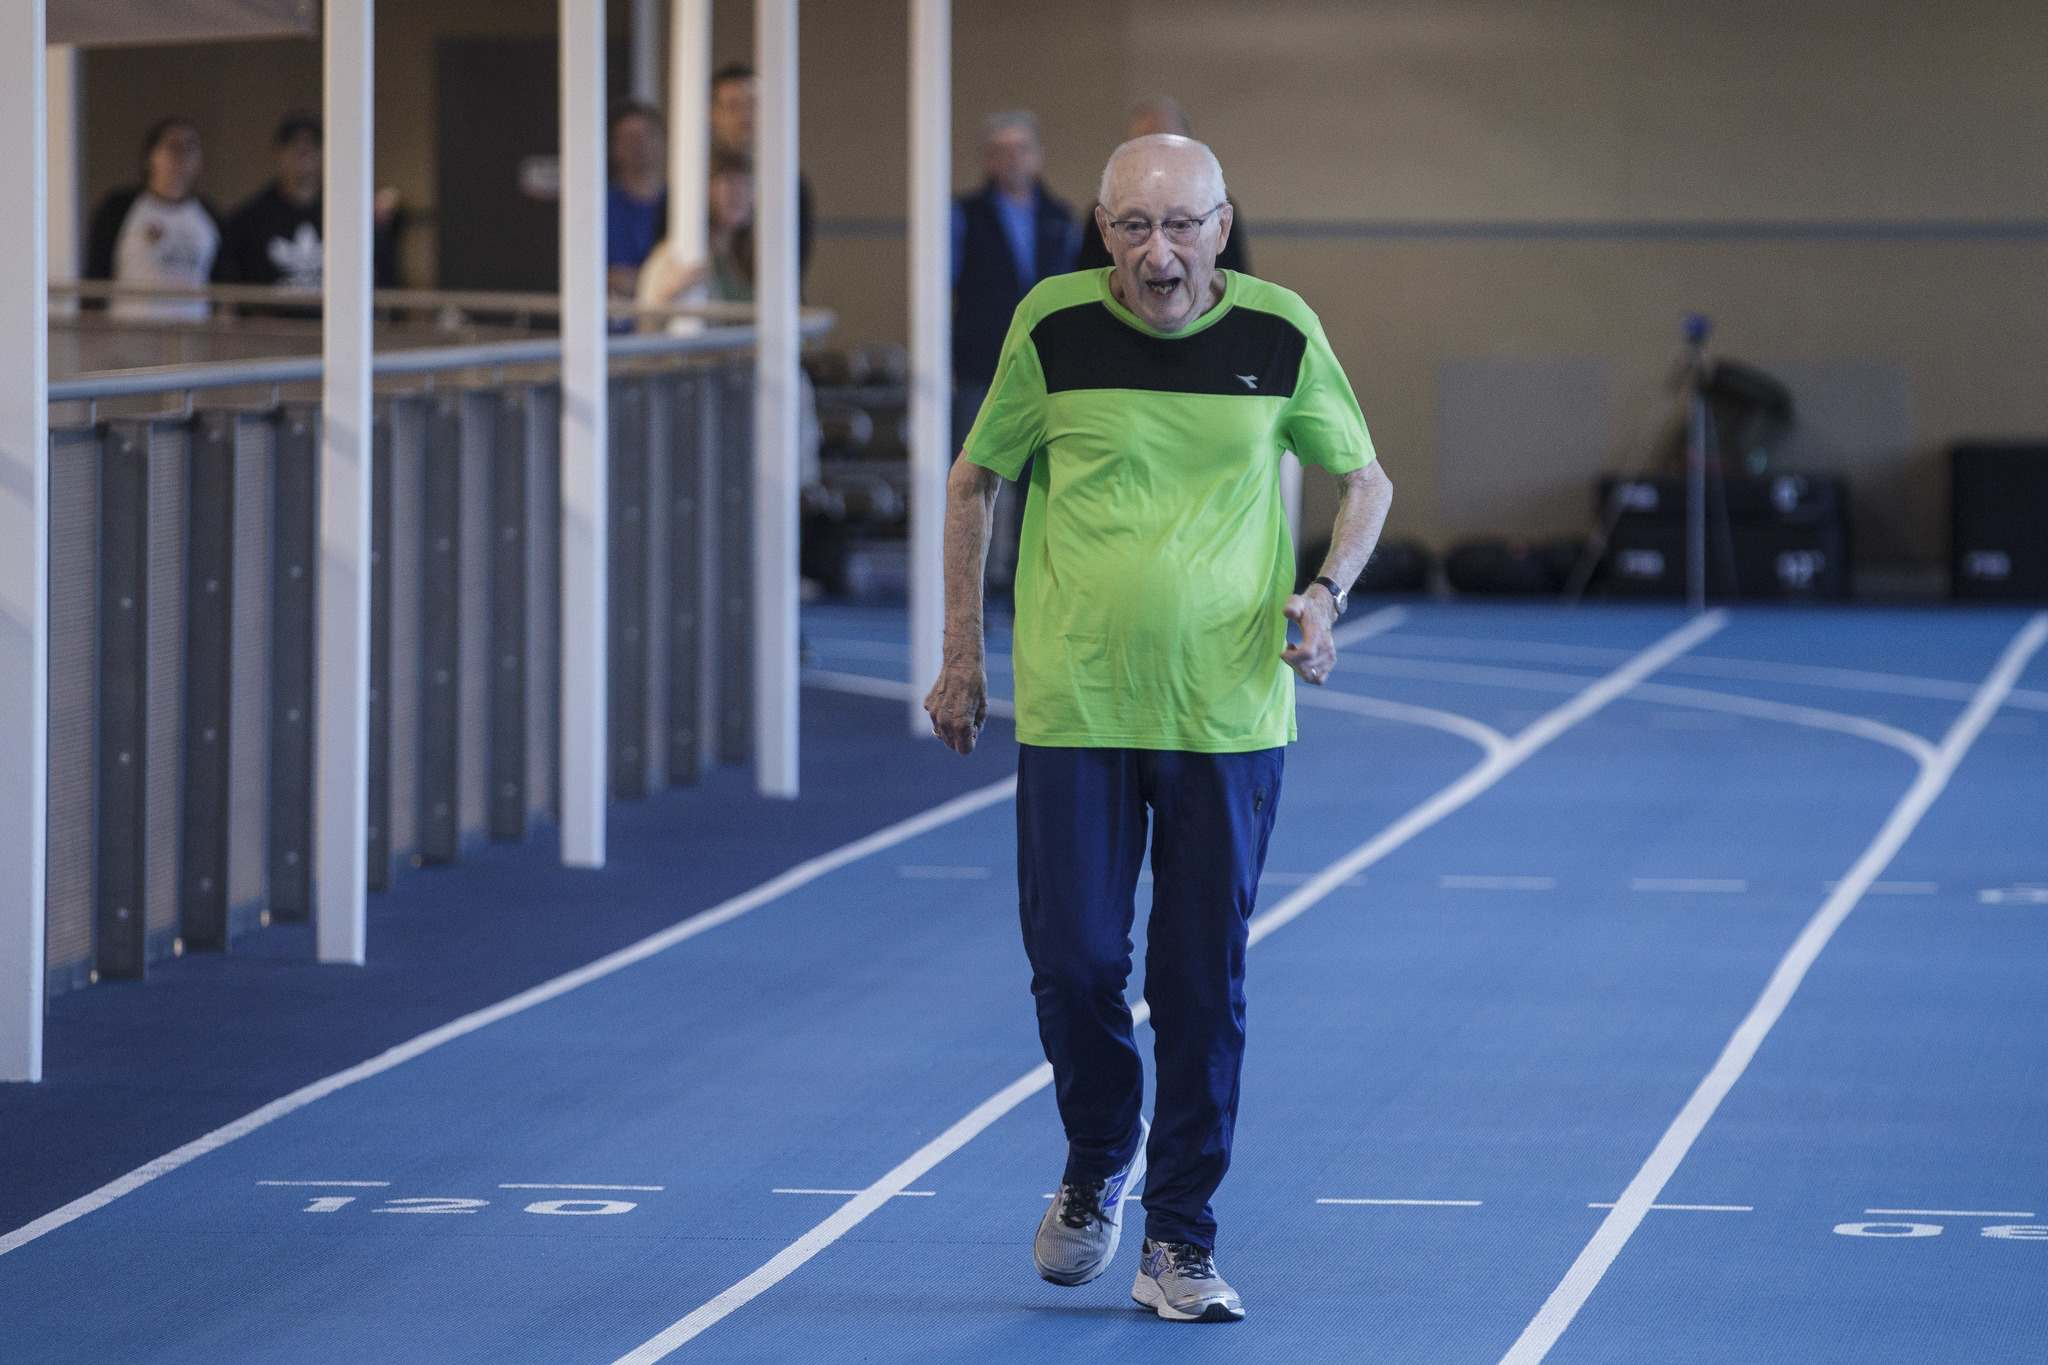 MIKE DEAL / WINNIPEG FREE PRESS</p><p>Lou Billinkoff runs the 50 meter dash in 14.45 seconds on his 95th birthday at the Canada Games Sport for Life Centre while training for a 100m sprint at the end of June.</p>